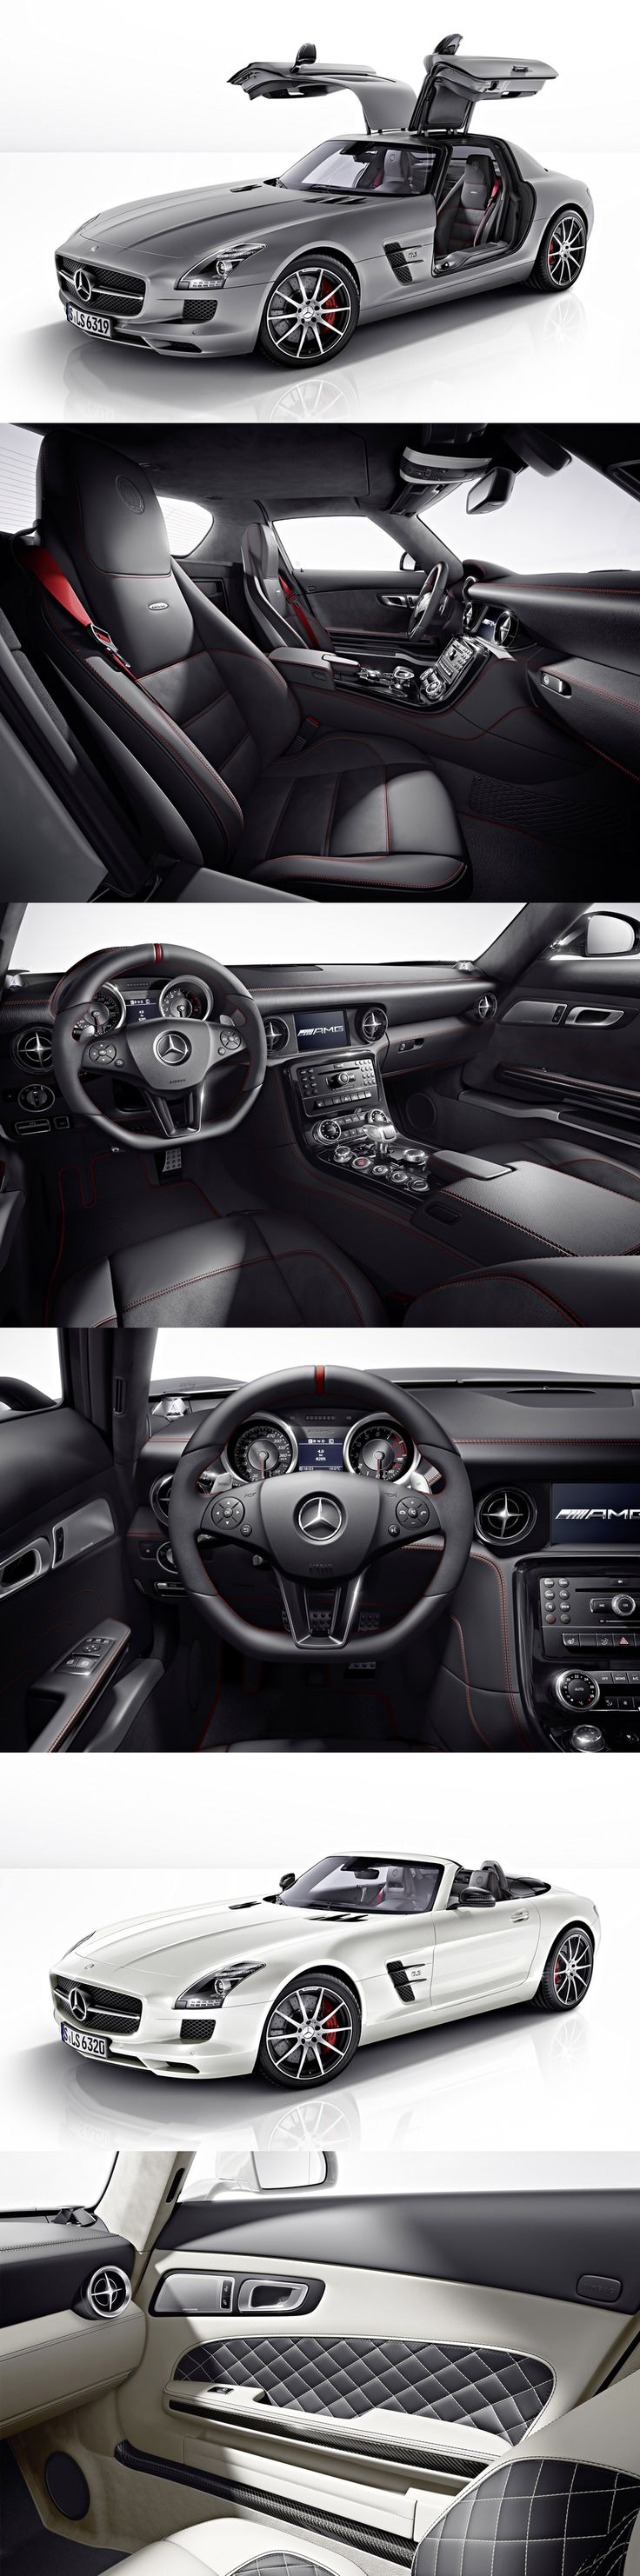 New 2013 Mercedes Benz SLS AMG GT sports added horsepower and performance